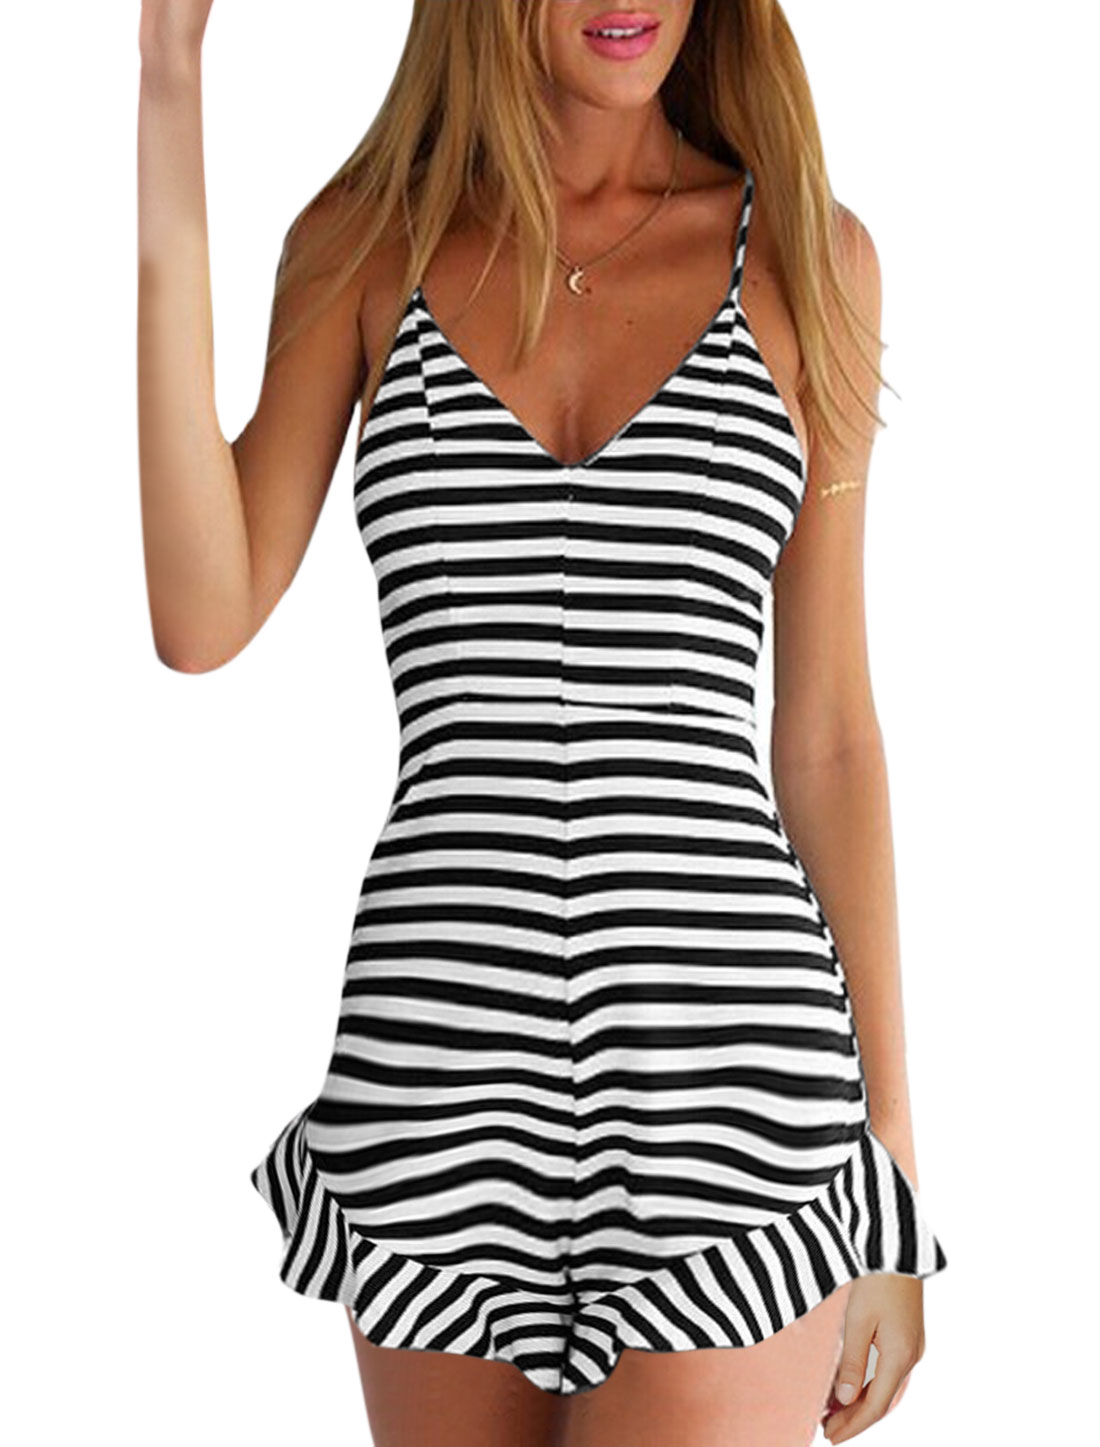 Woman Stripes Deep V Neck Spaghetti Straps Flouncing Hem Romper Black White L